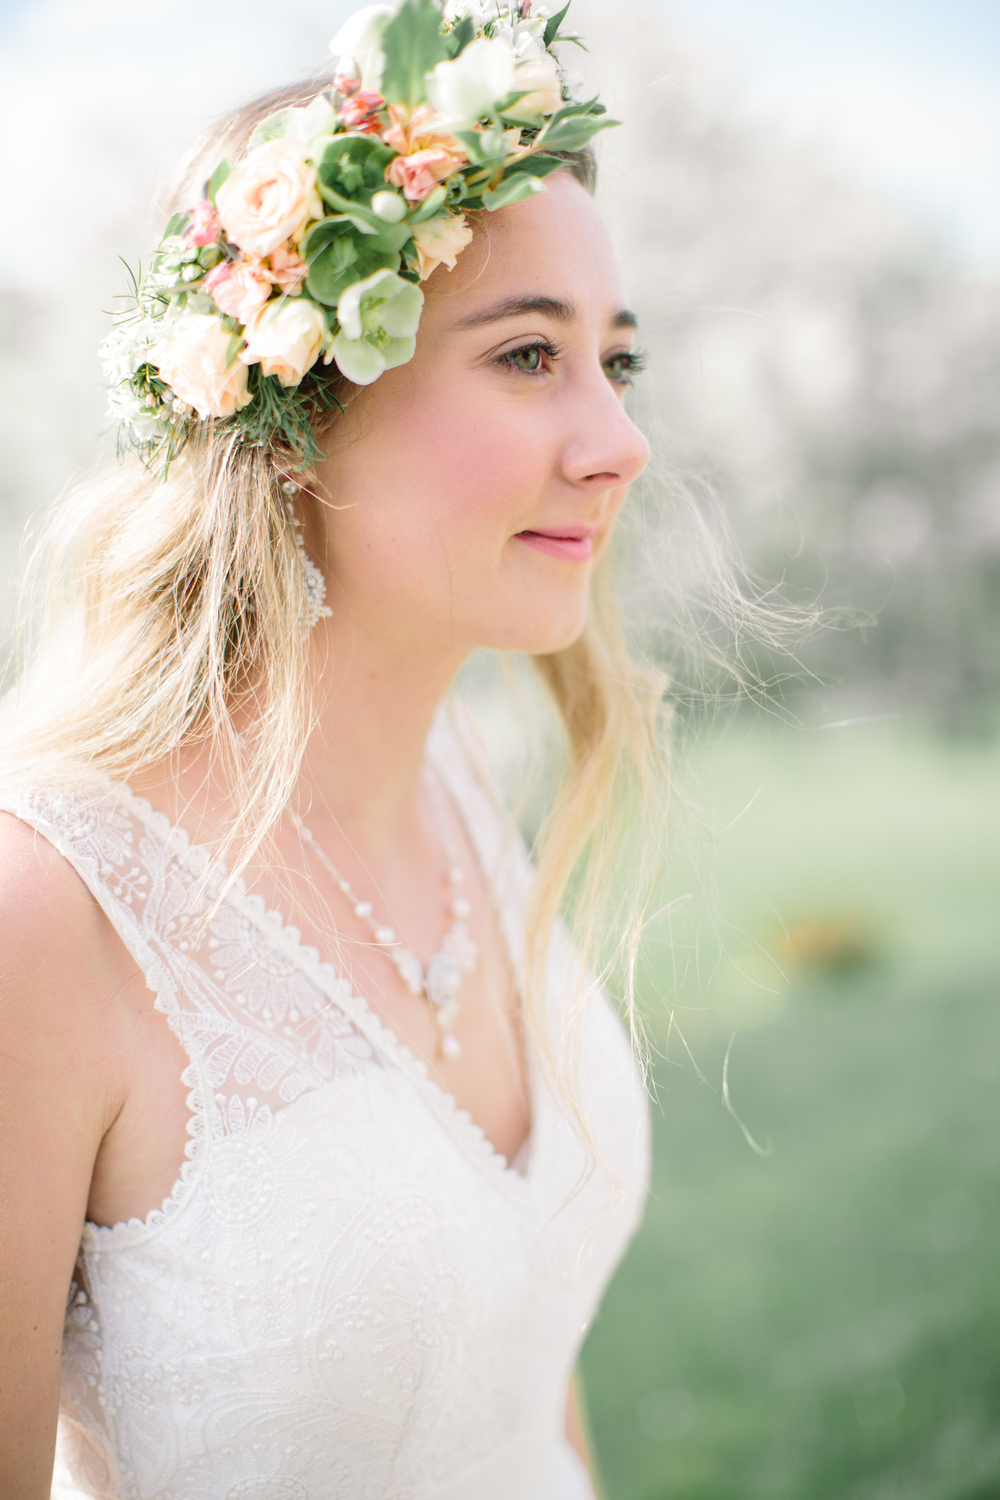 Vermont Apple Blossom Wedding Inspiration | Lace Bridal Jewelry